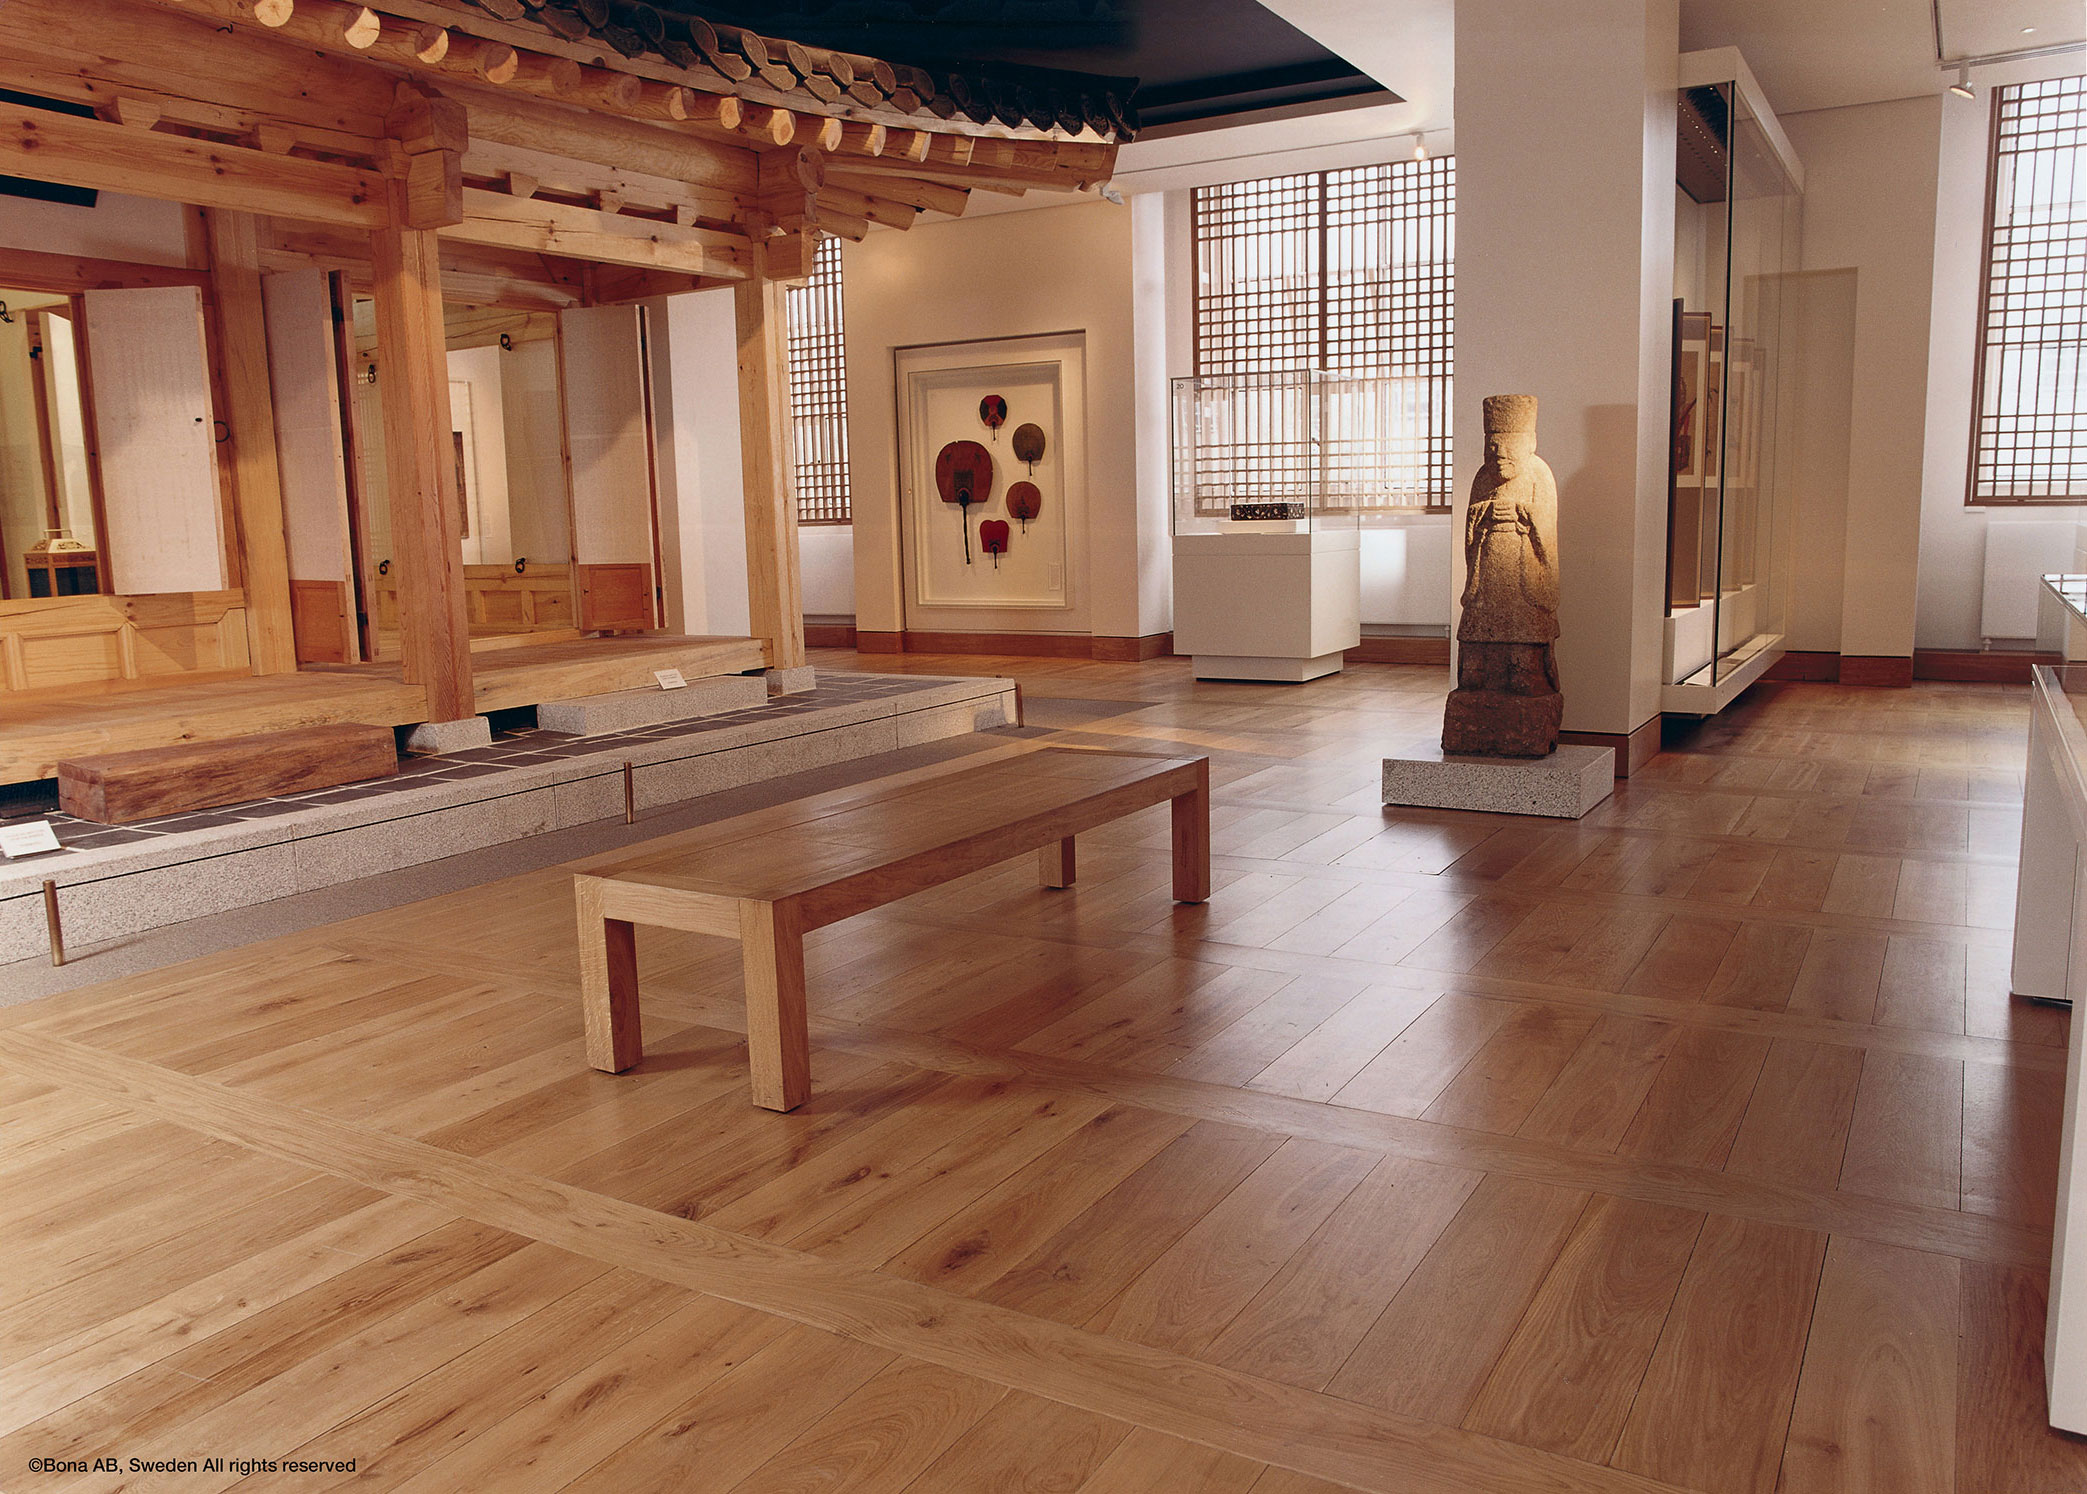 Korean Gallery, British Museum